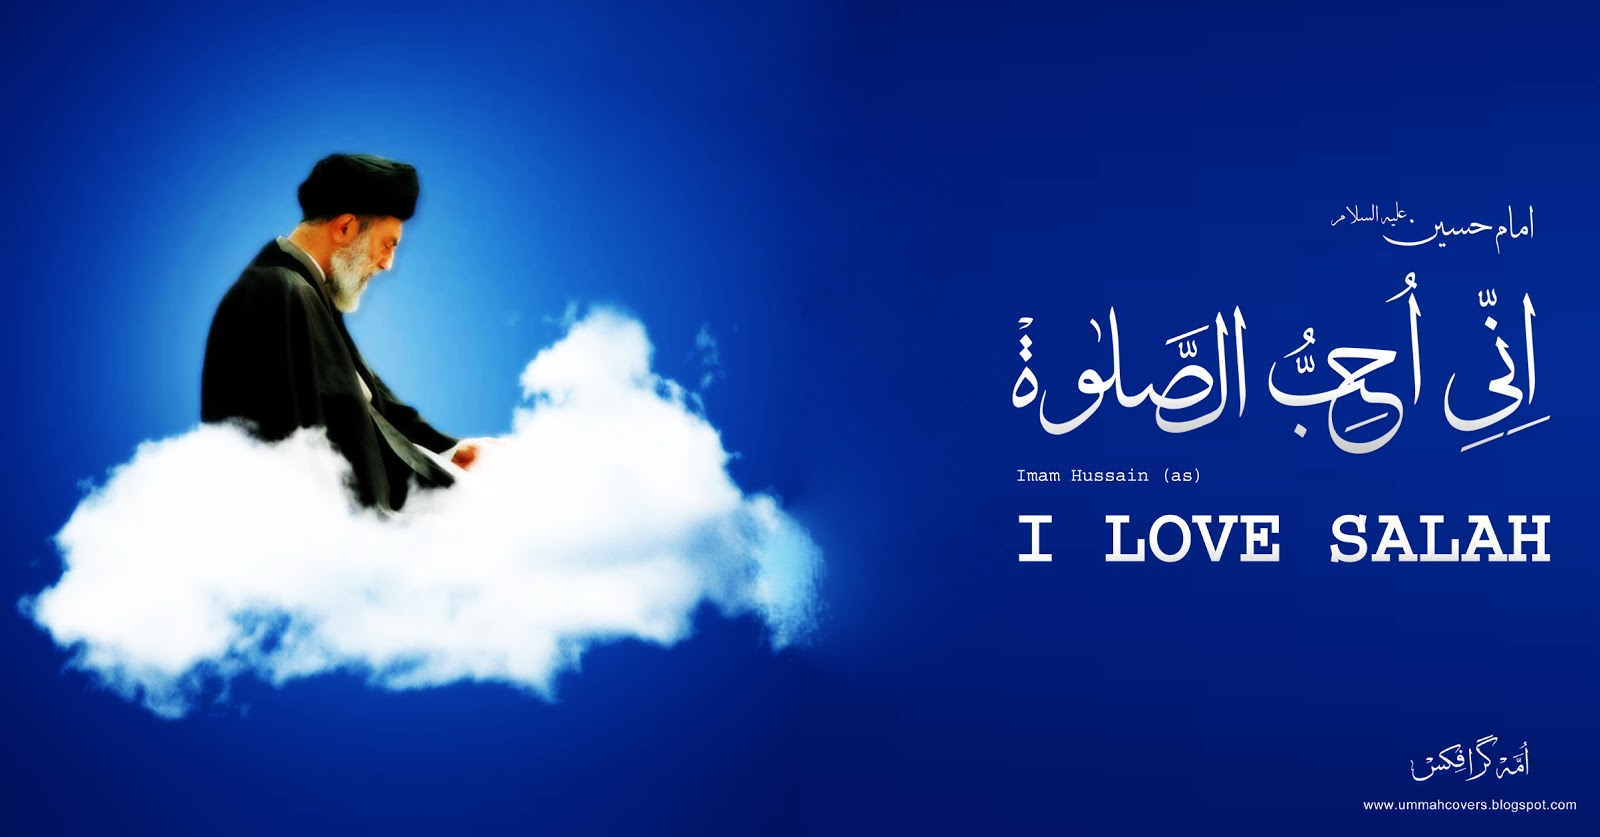 Love Wallpaper For Fb Profile Pic : UMMAH Graphics: I Love Salah ( Imam Hussain a.s ) Wallpaper + FB cover